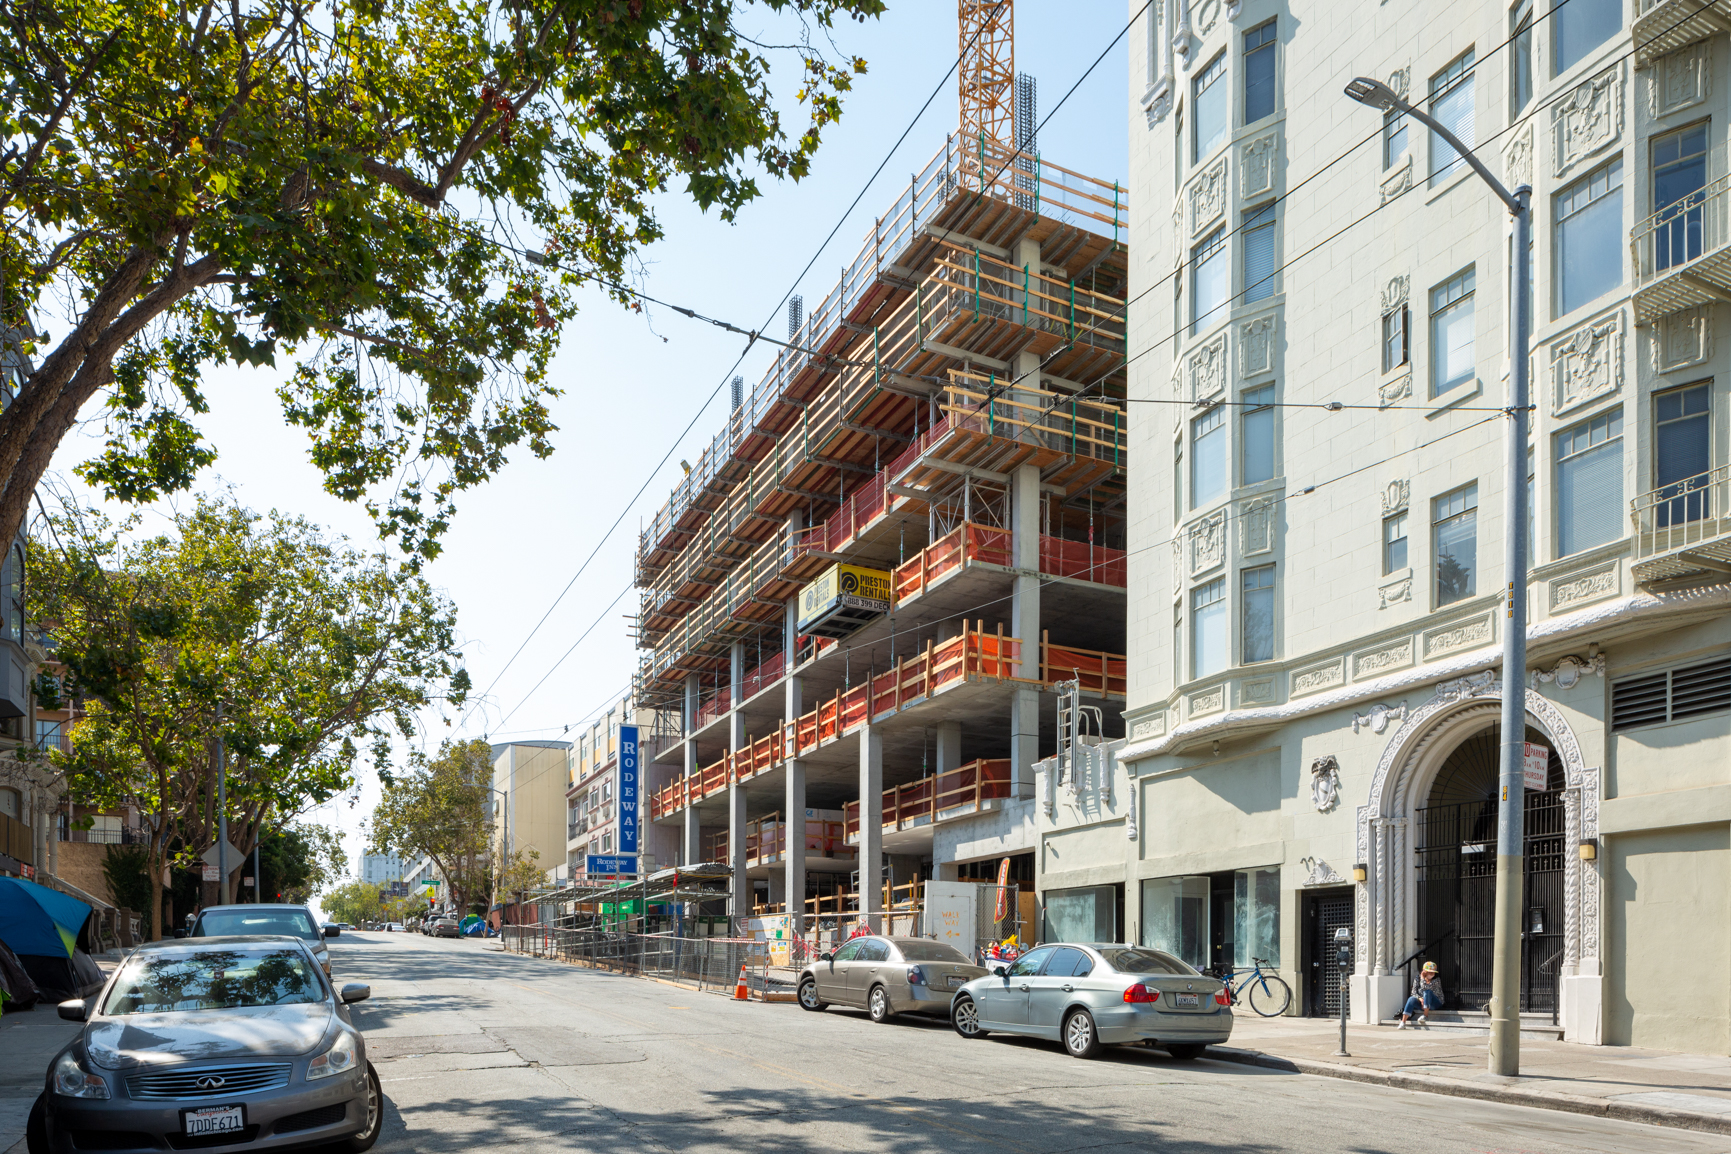 830 Eddy Street, image by Andrew Campbell Nelson